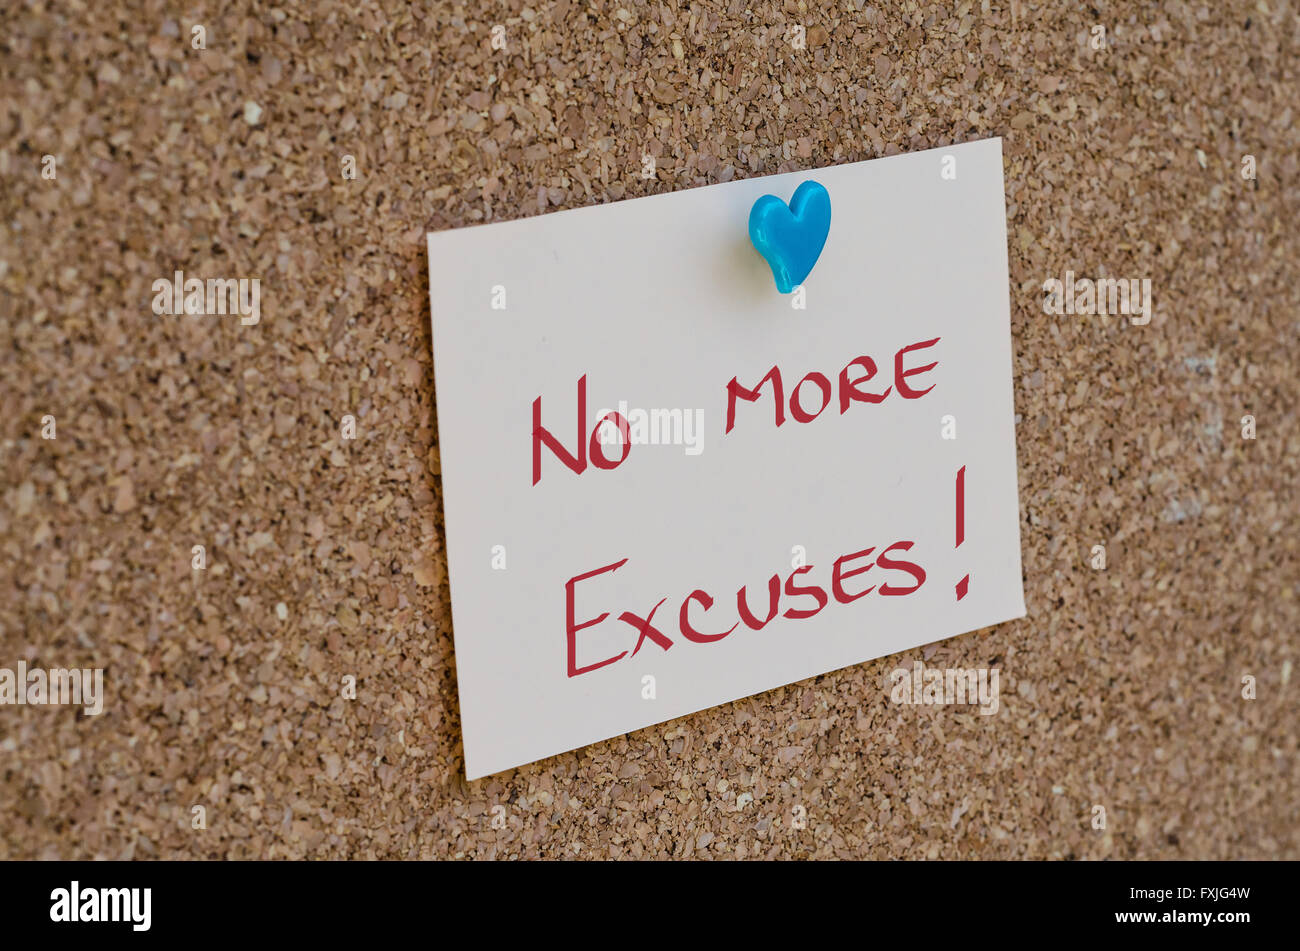 NO EXCUSES. Motivational concept written on a note - Stock Image